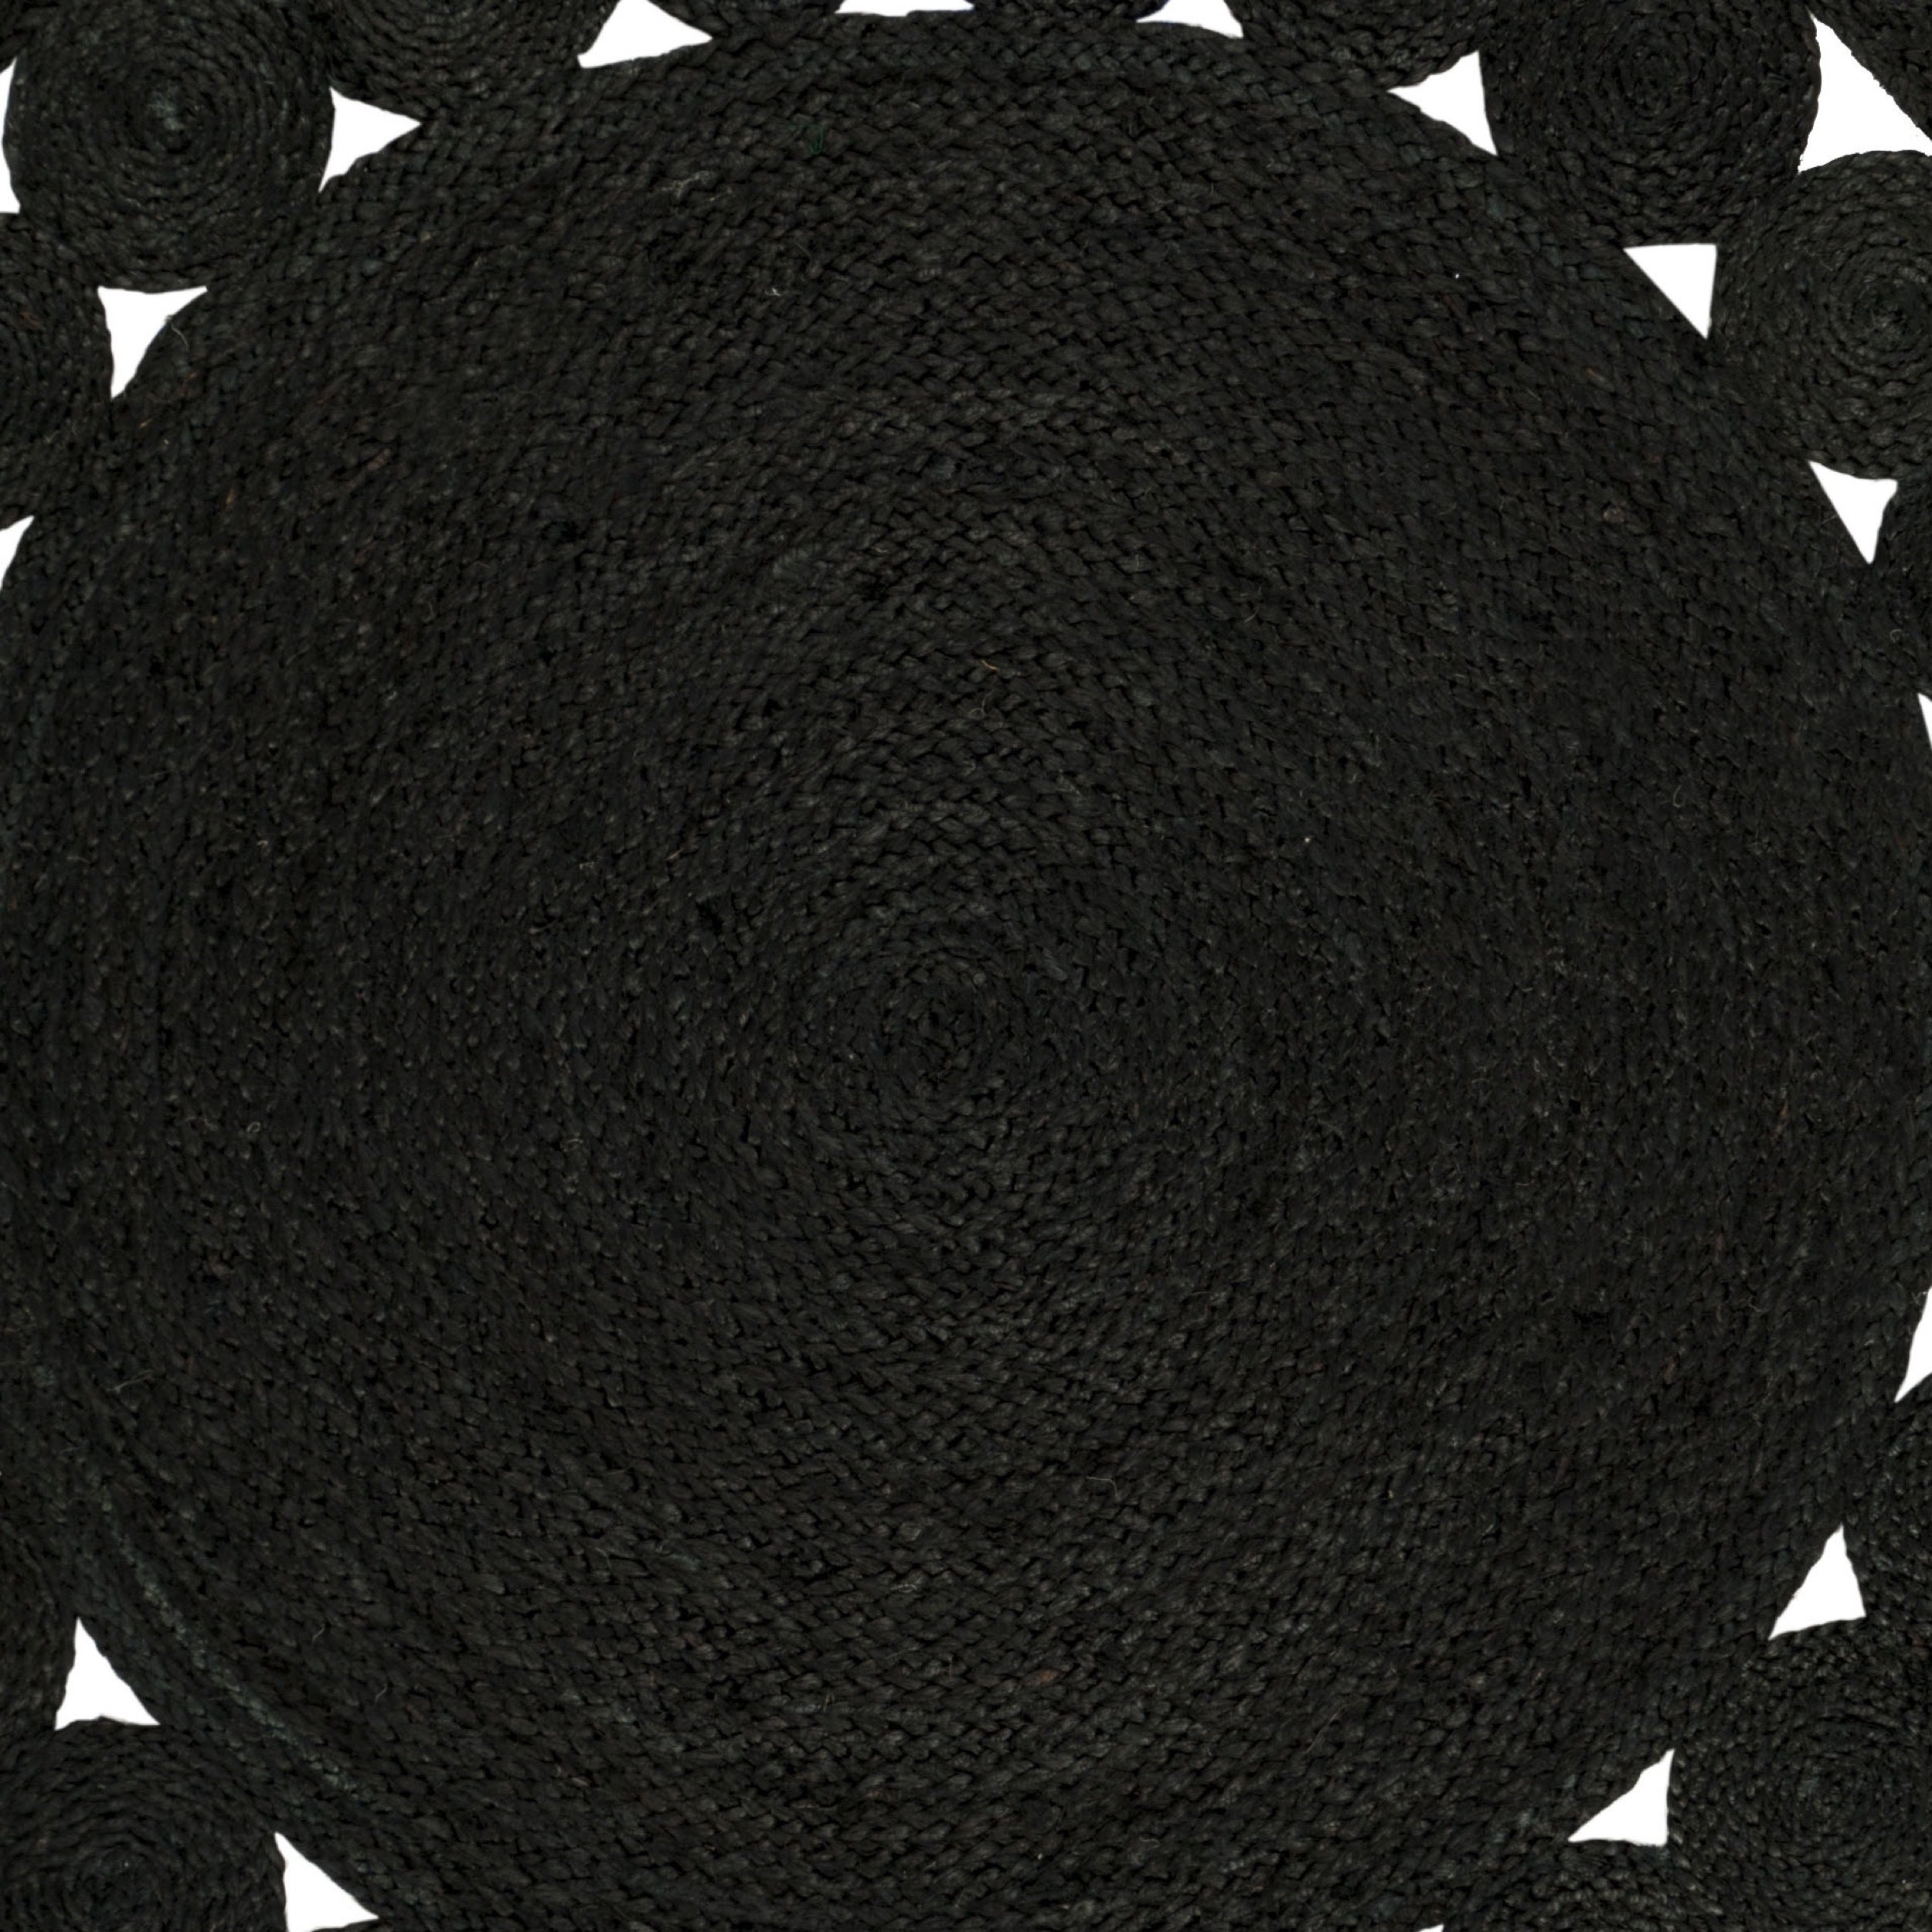 Safavieh Hand Woven Natural Fiber Black Jute Rug 3 X Round On Free Shipping Orders Over 45 18850005